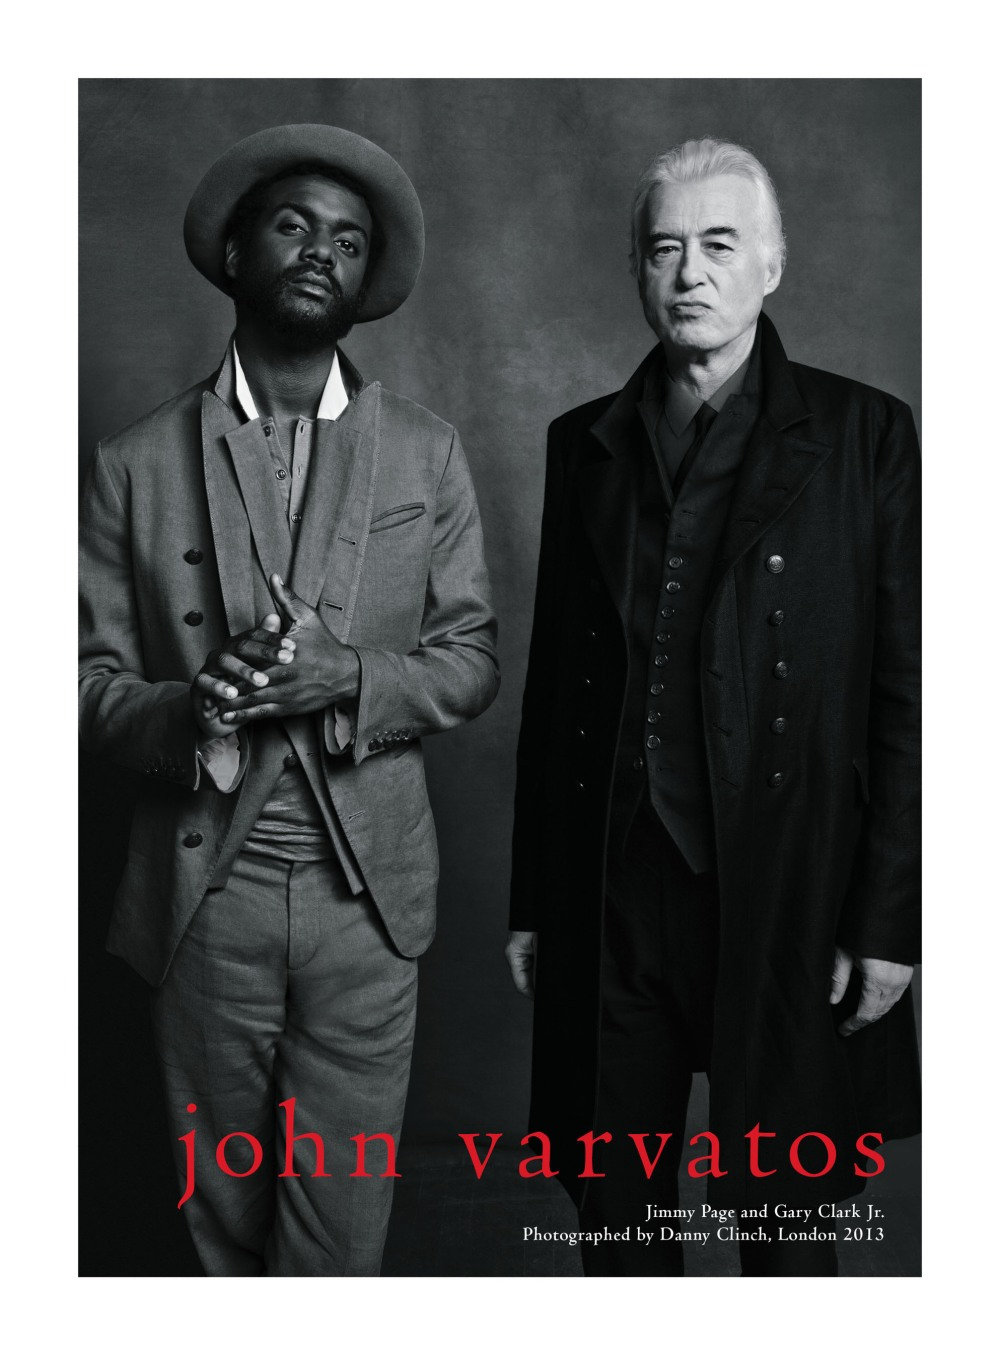 JOHN VARVATOS GARY CLARK JR. AND JIMMY PAGE